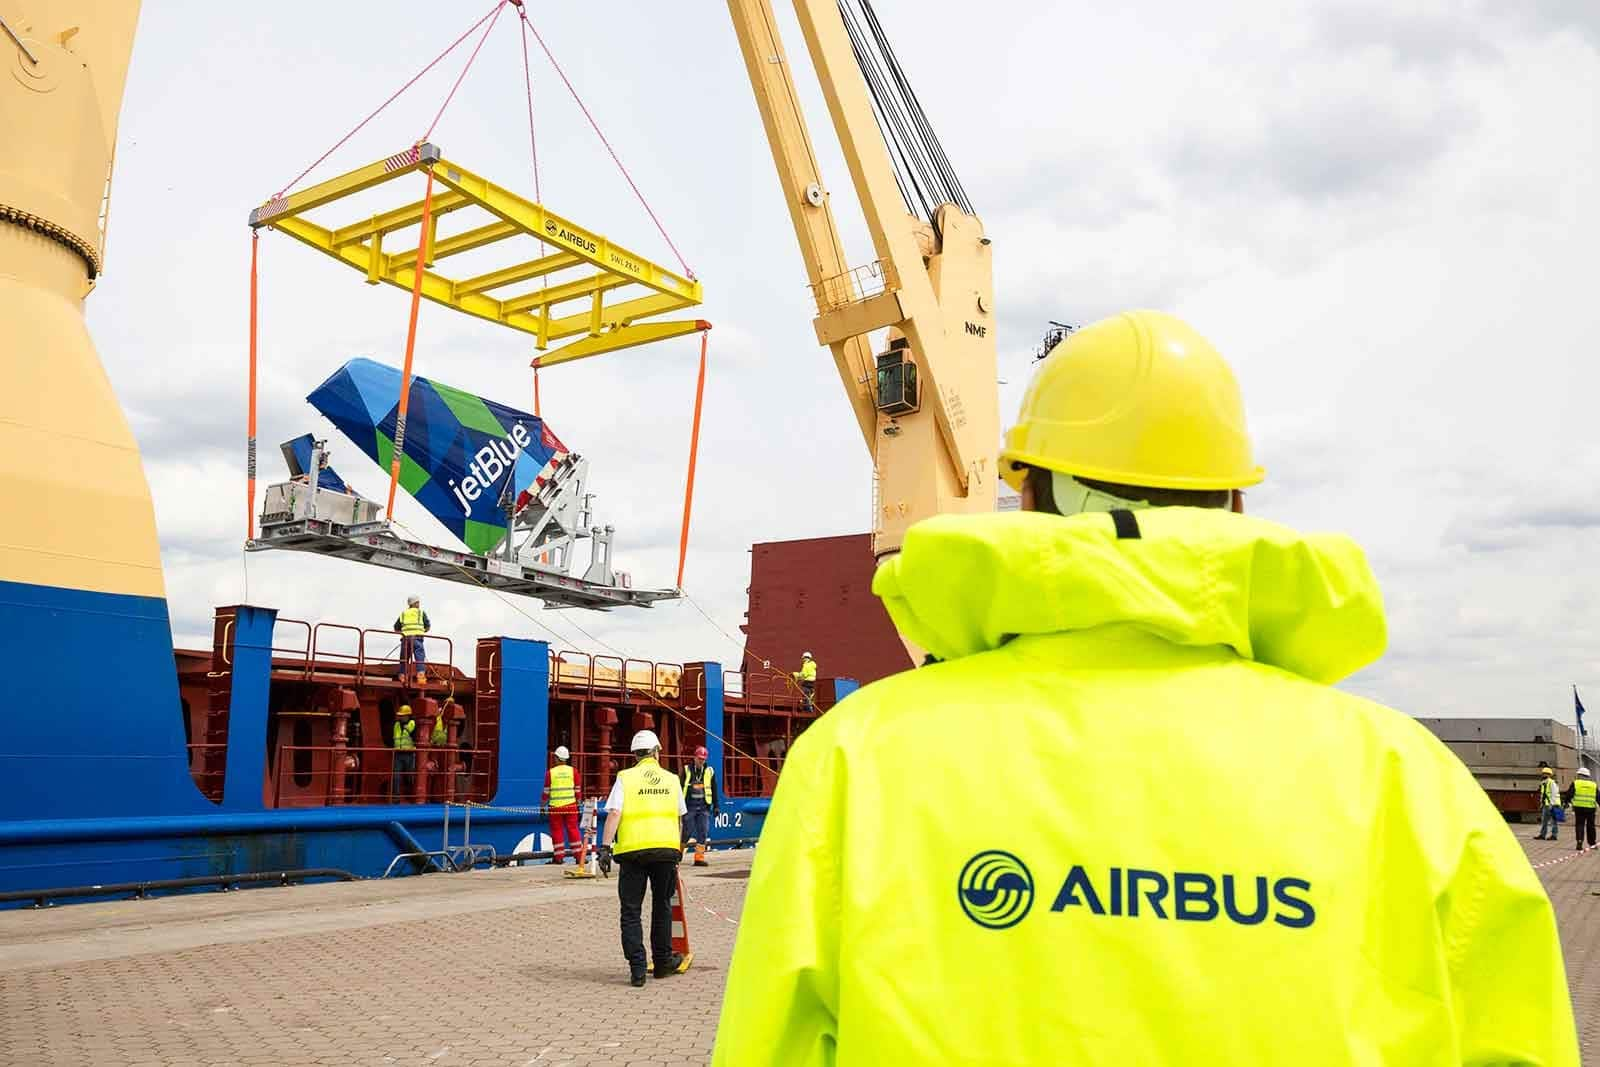 JetBlue Airbus Tail Fin on its way to Airbus USA Production Facility